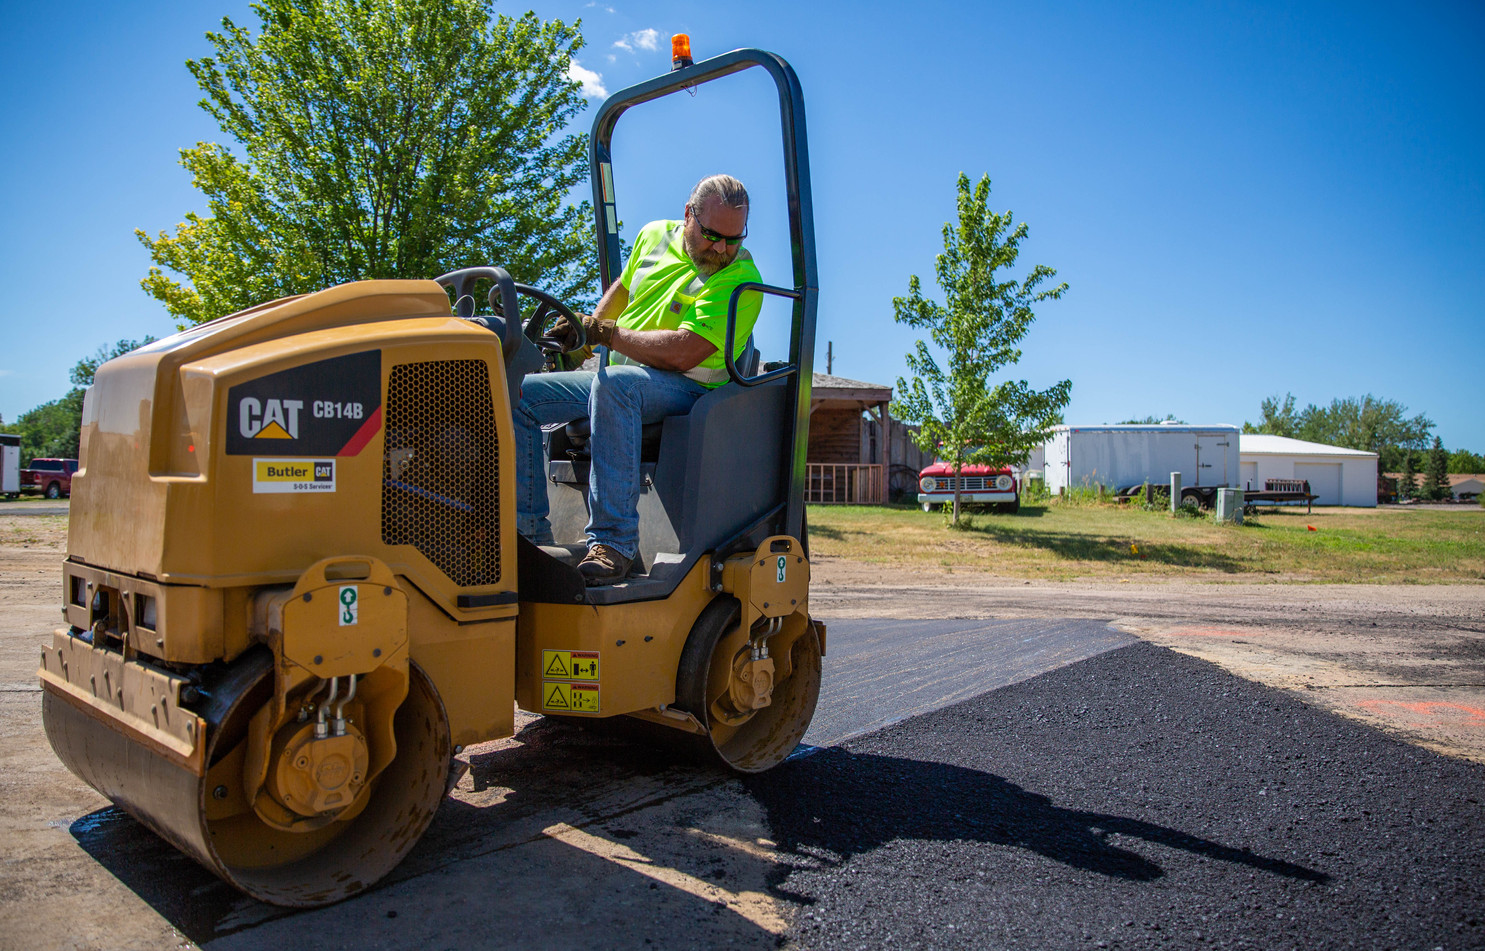 Keith Johnson of the Watertown Street Department drives a roller over a trench the Department patched on 4th St. SW at an angle to reduce a drop off once the asphalt cools and hardens. The roller uses vibrations to compact the asphalt down and its weight to smooth it out. ©2018 Grace Ramey